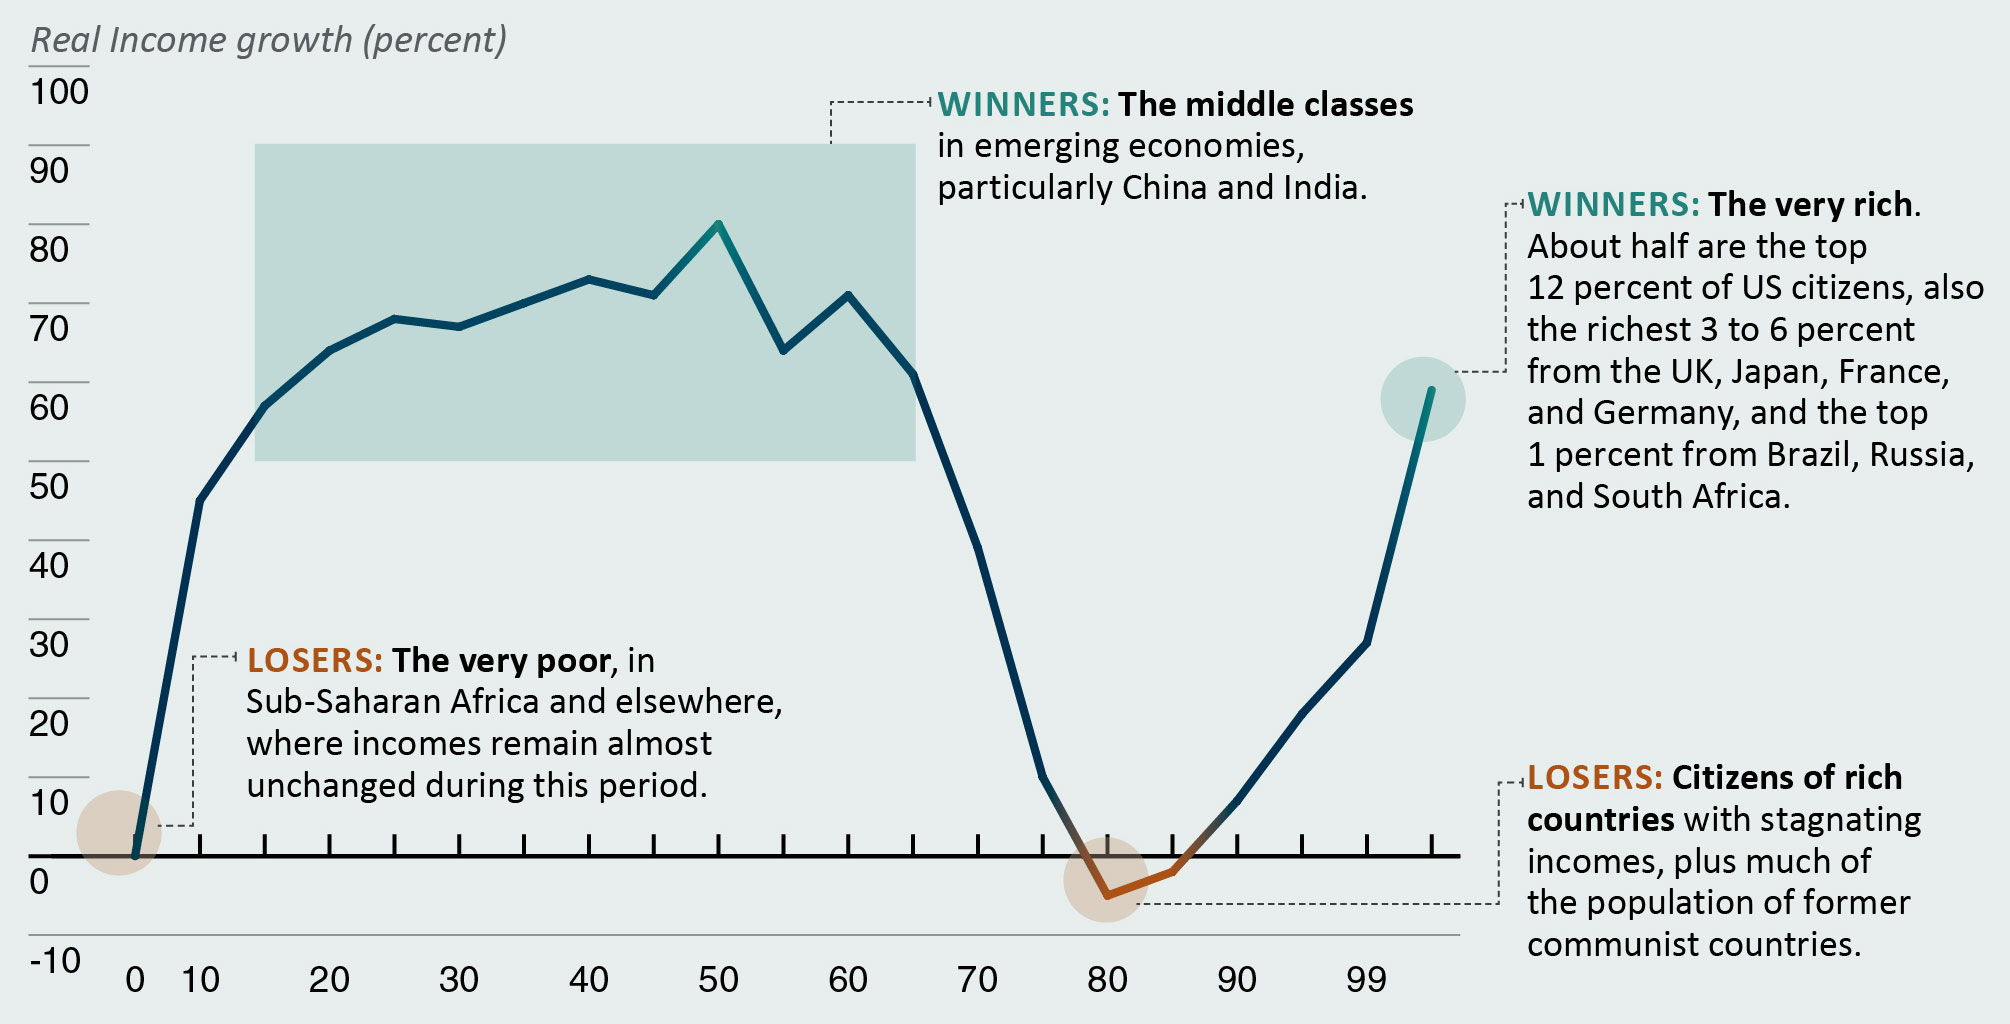 Chart showing Changes in Real Income by World Income Percentiles (at Purchasing Power Parity) From 1988 to 2008